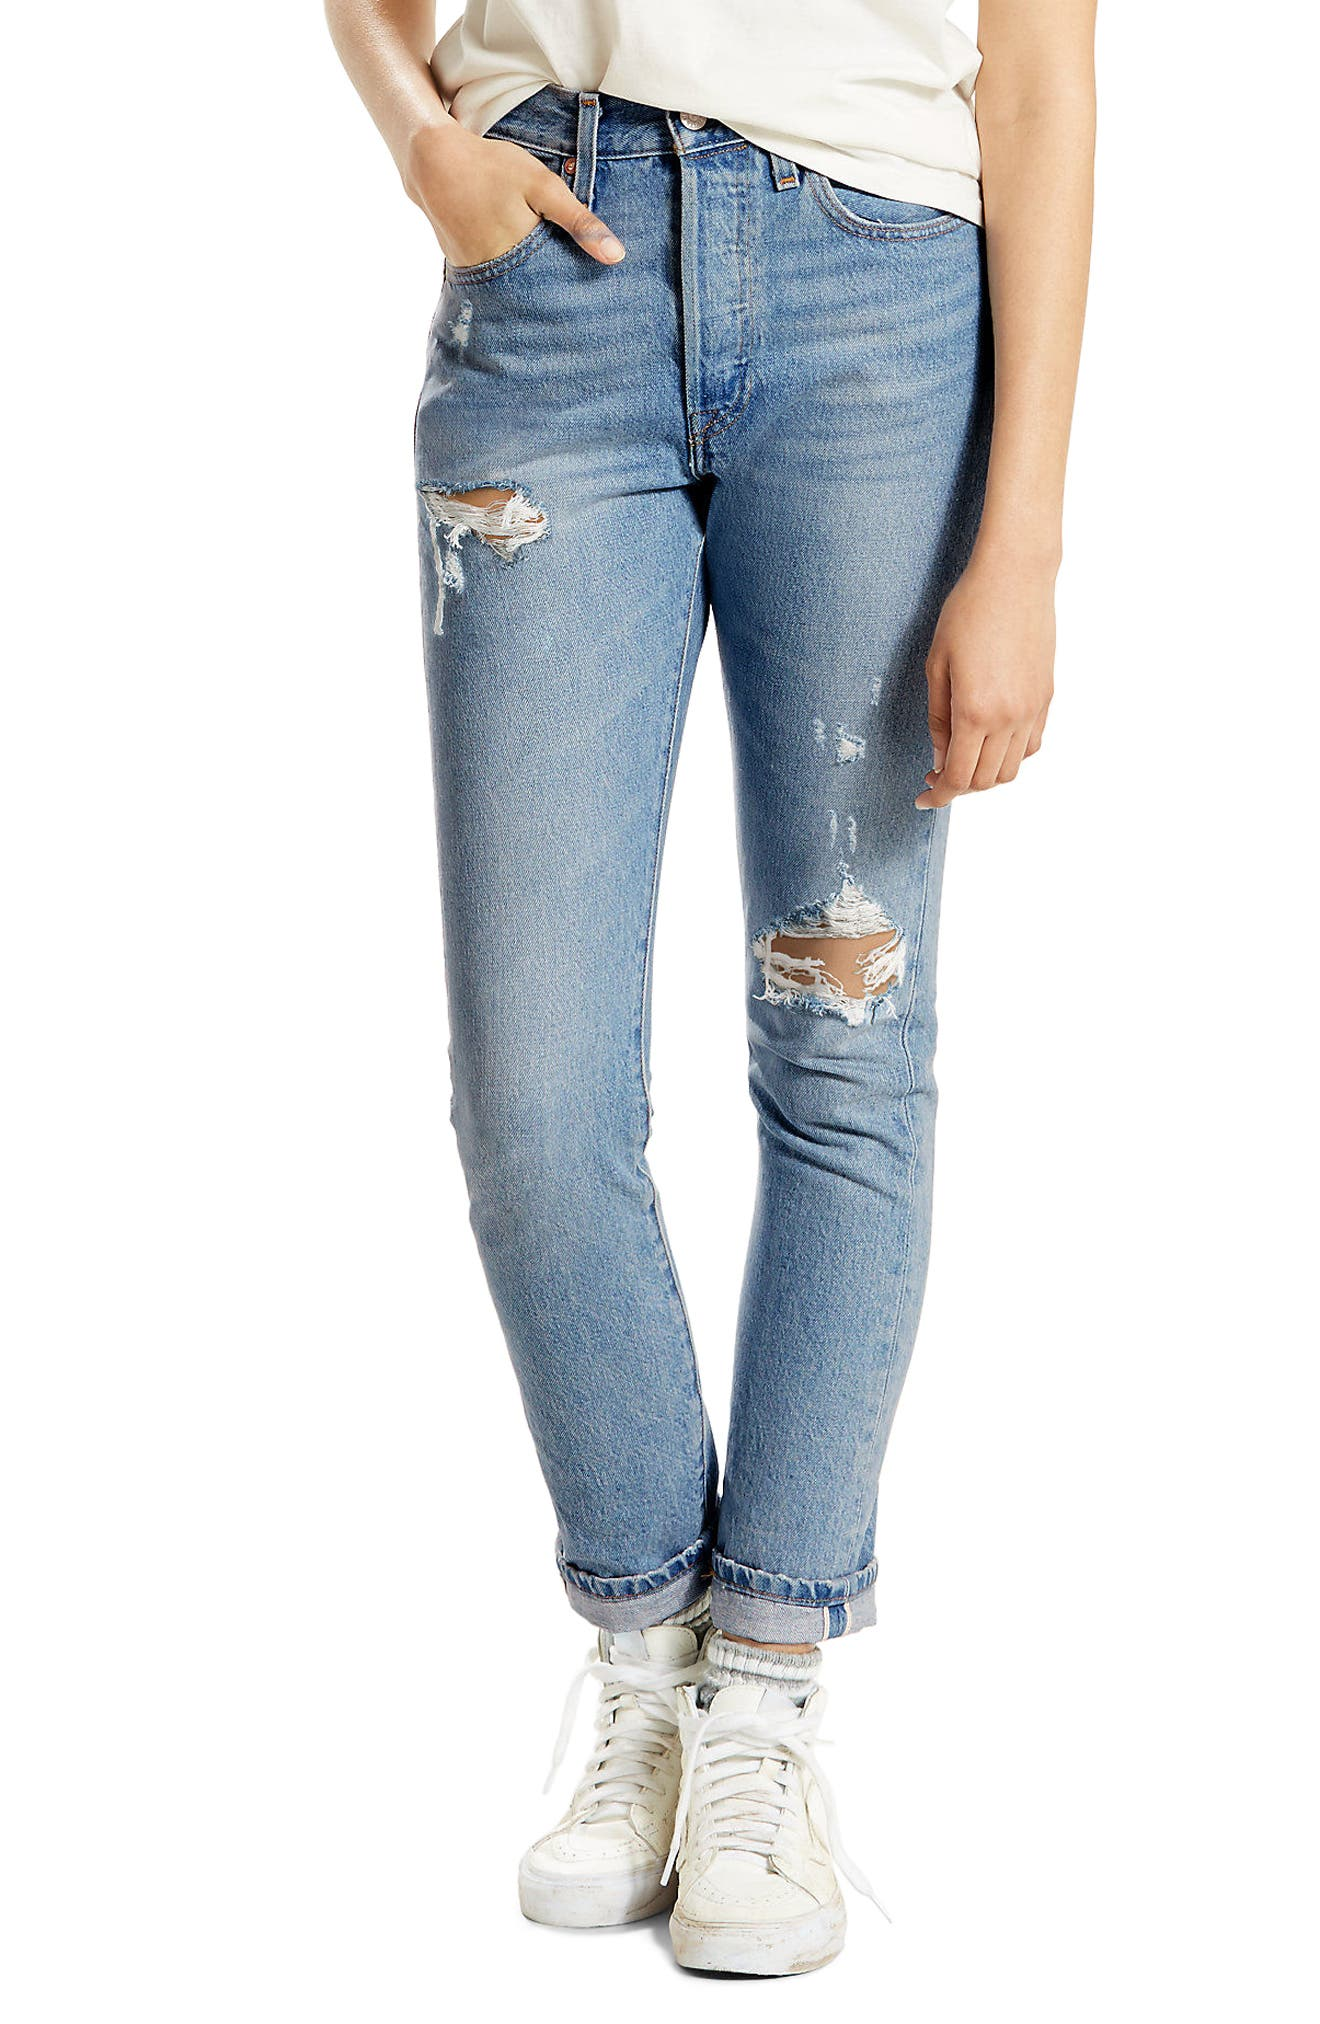 501 High Waist Skinny Jeans,                         Main,                         color, 420